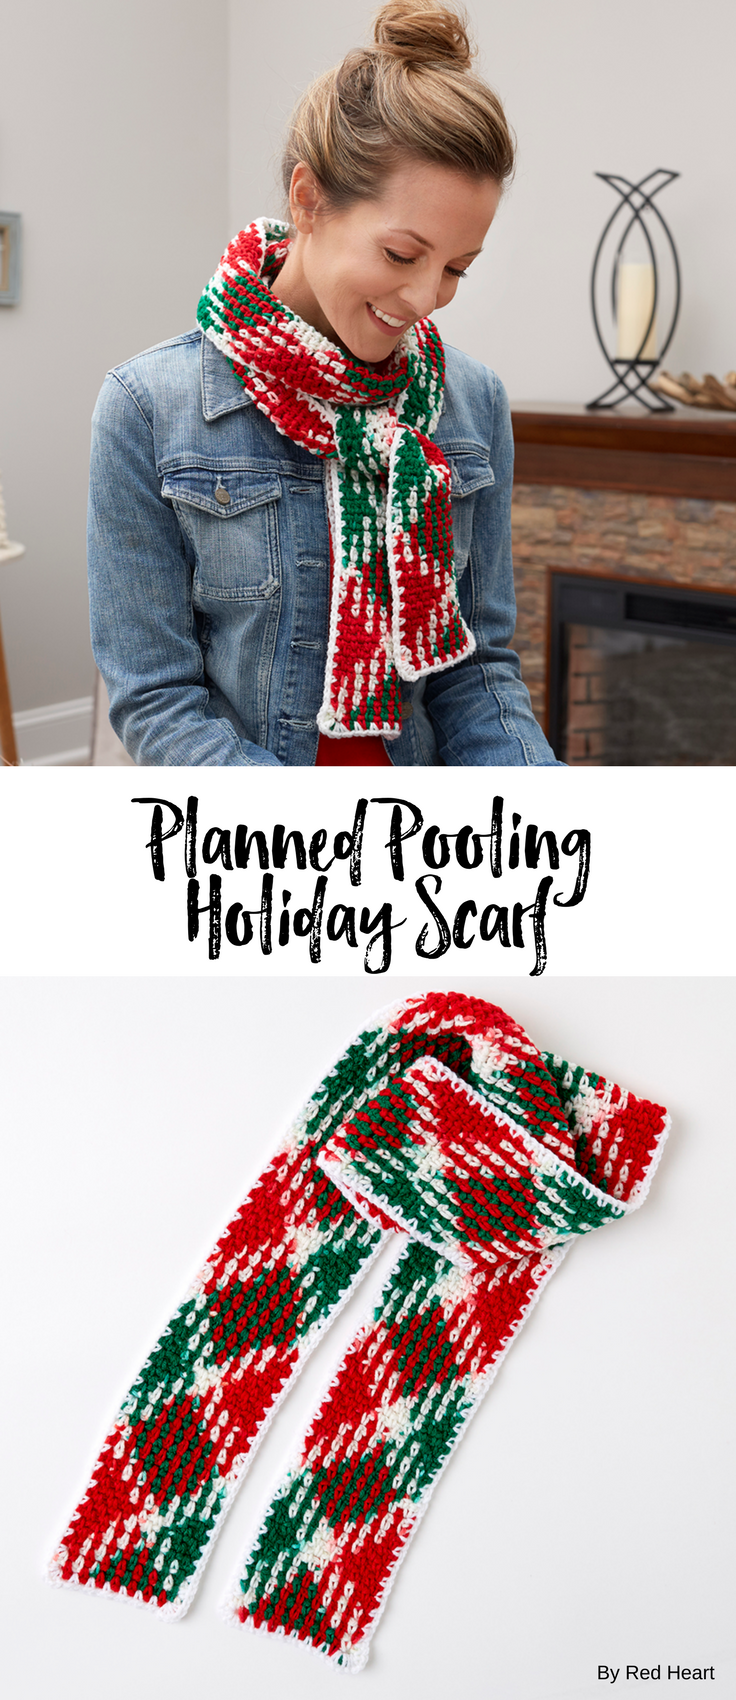 Planned Pooling Holiday Scarf free crochet pattern in Super Saver ...